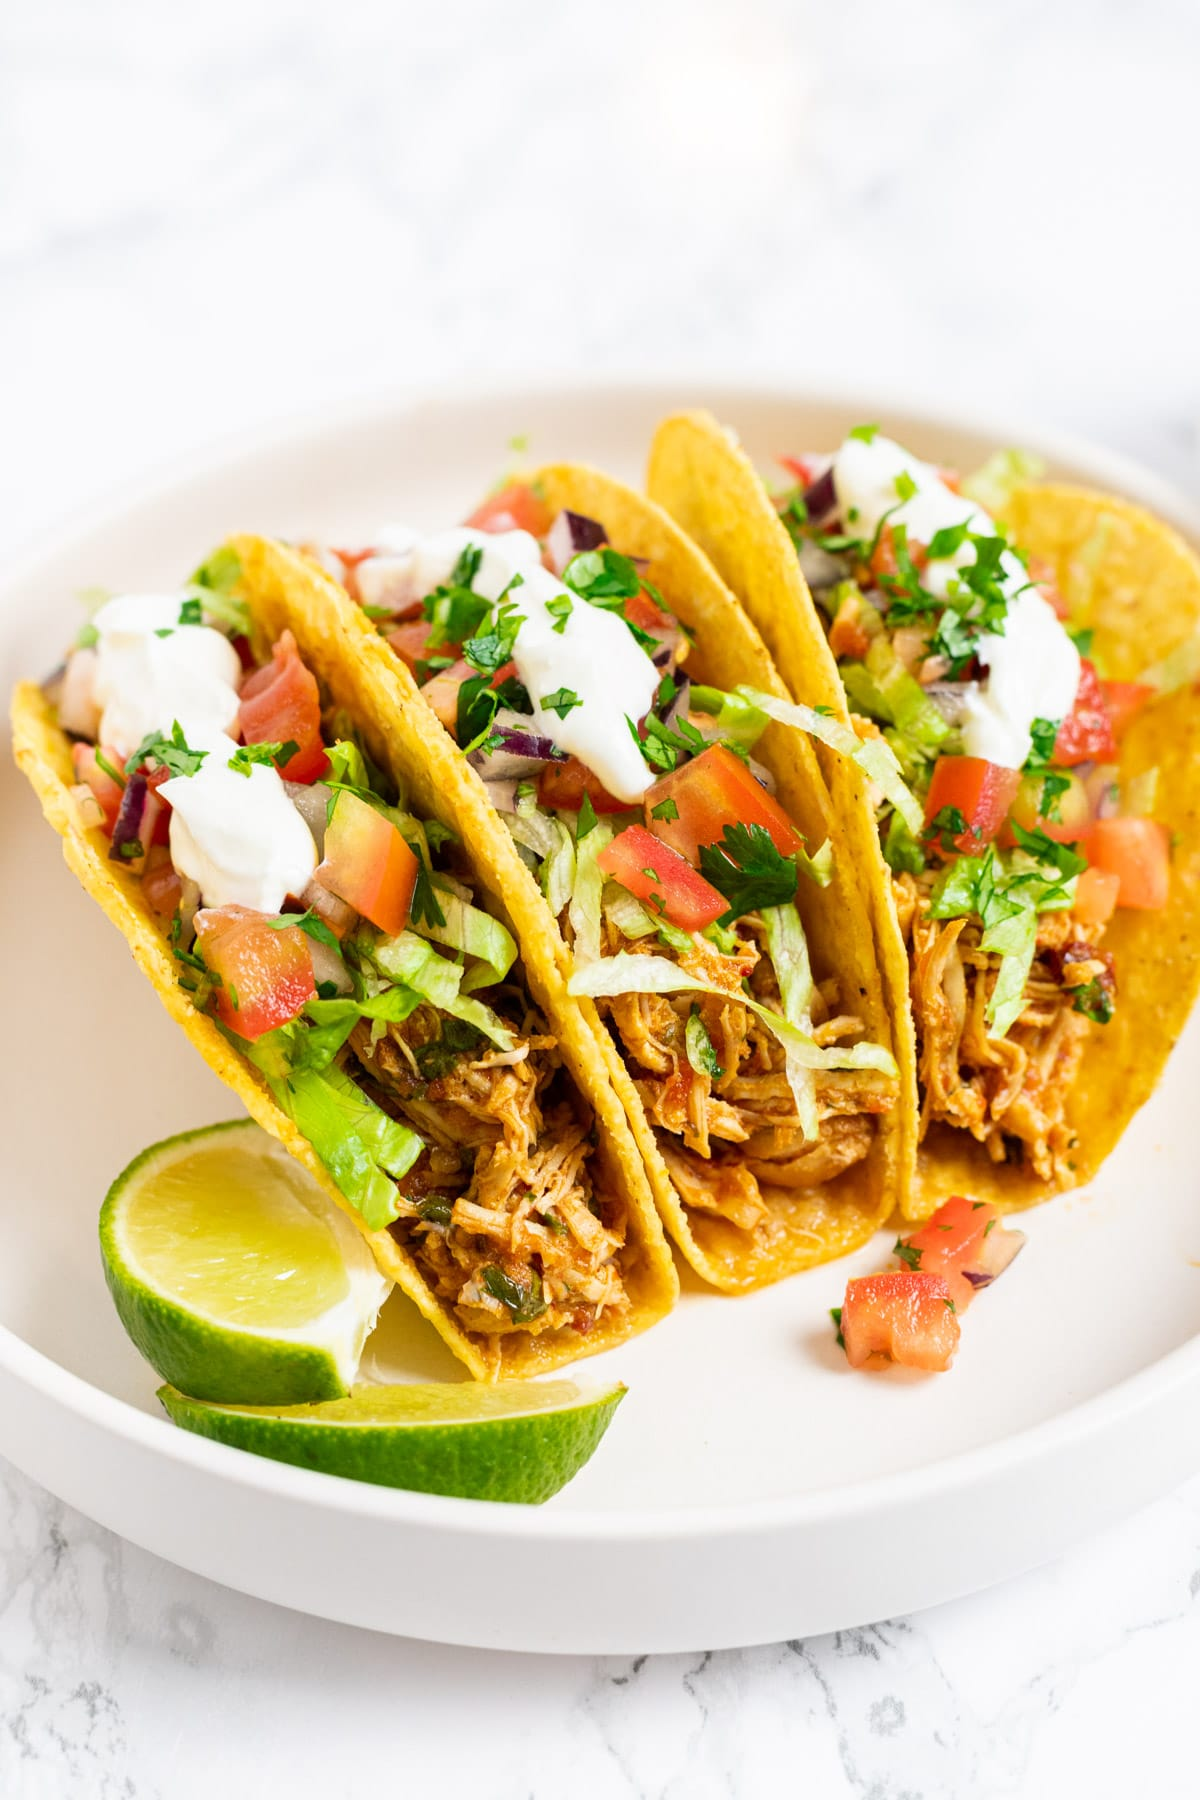 Aa side view of three shredded chicken tacos on a plate.